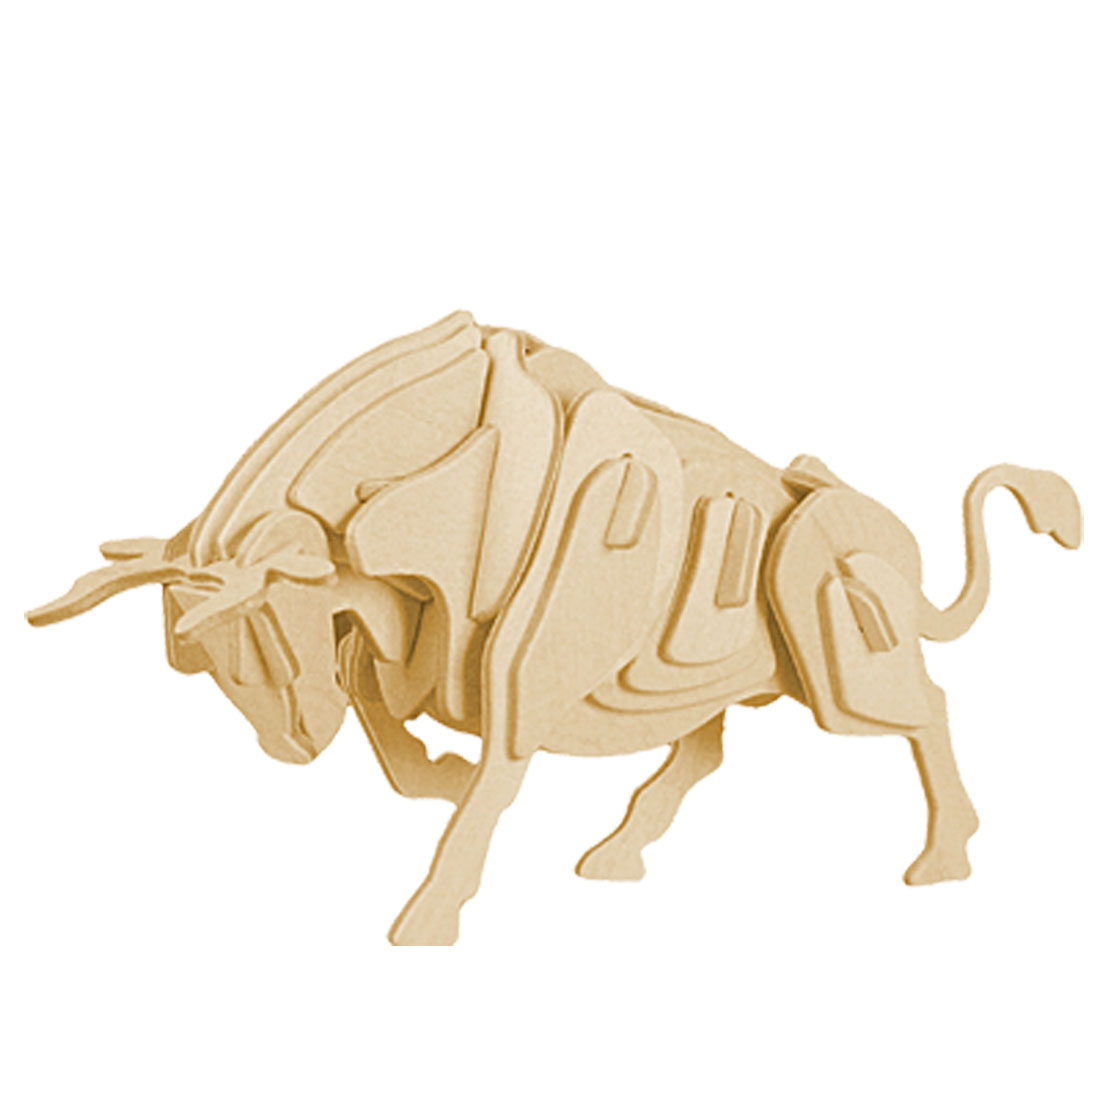 Wooden DIY 3D Bull Construction Brain Testing Puzzle Toy for